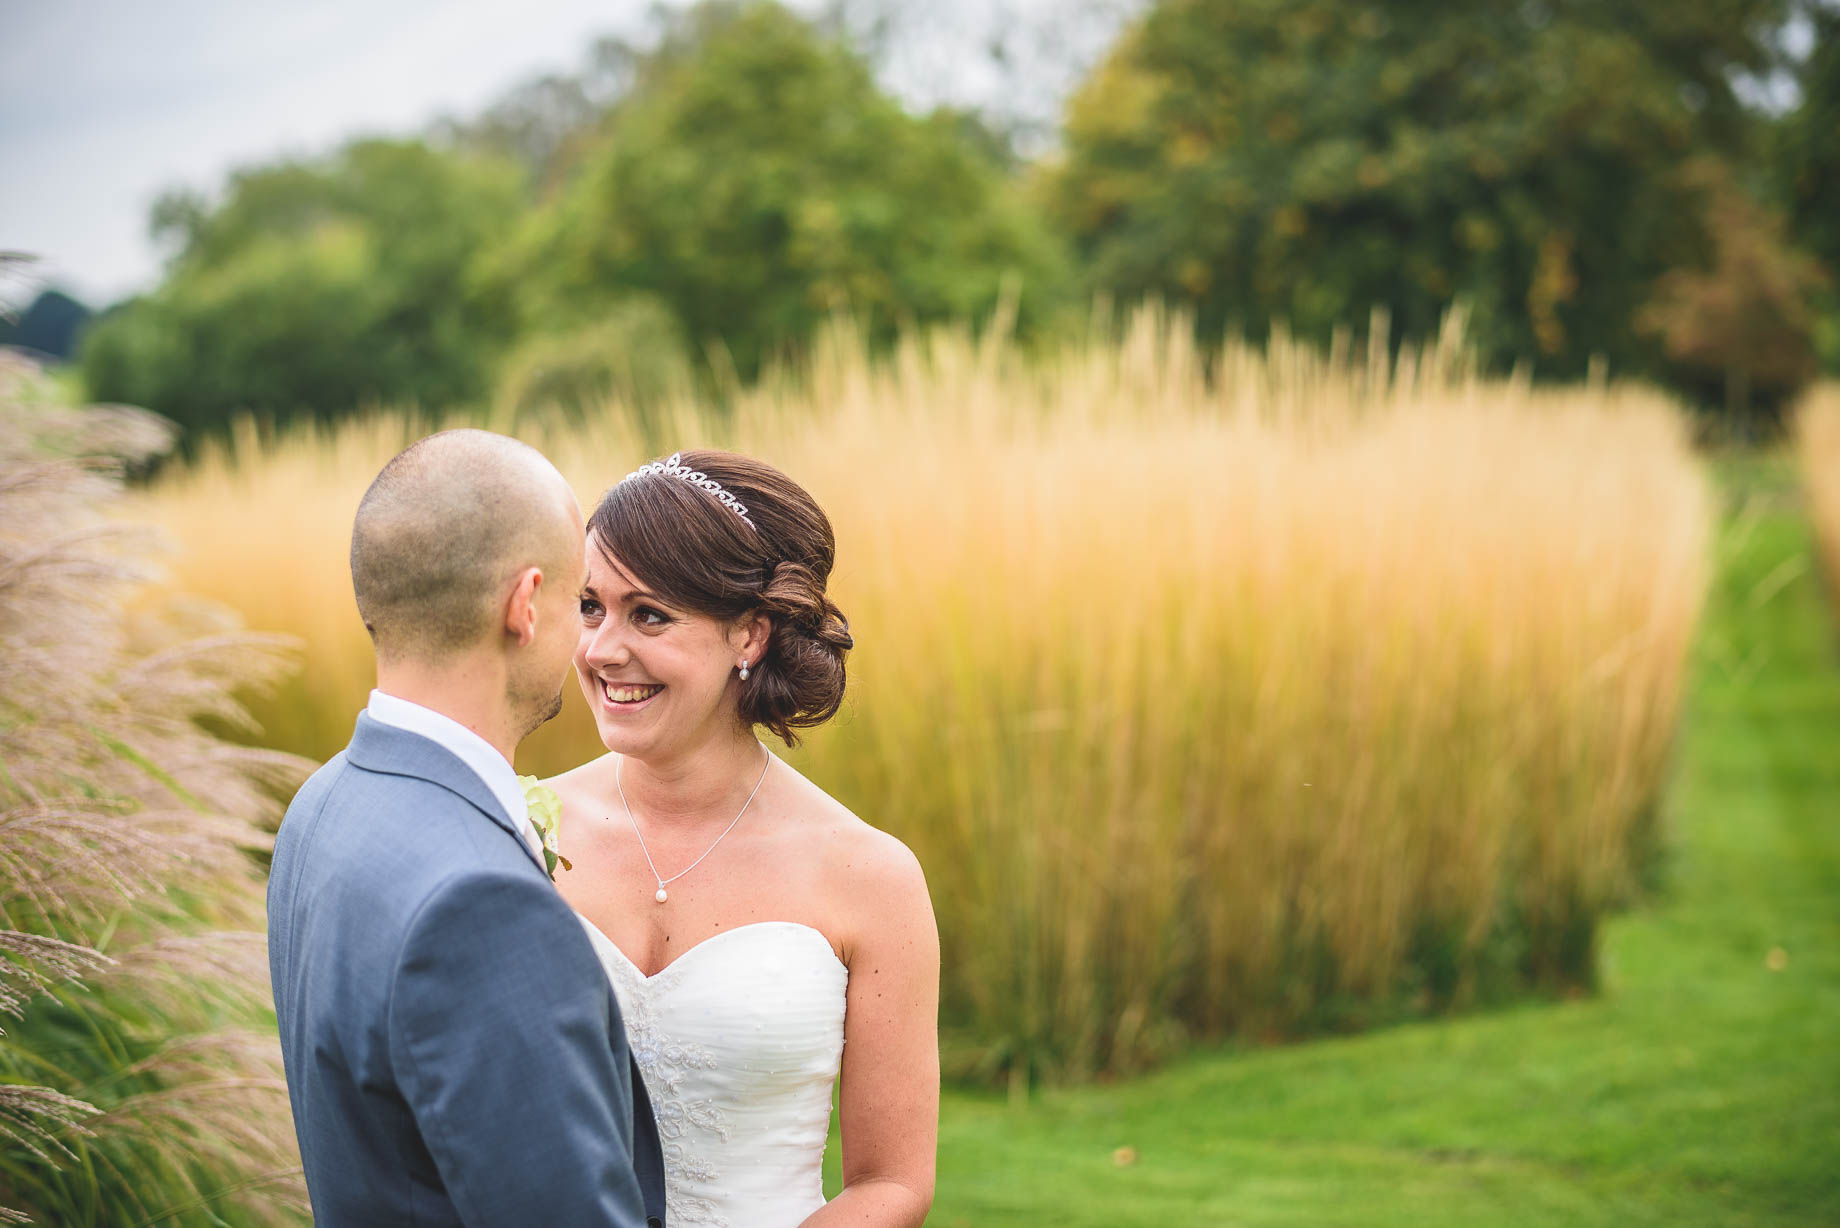 Bury Court Barn wedding photography - Guy Collier Photography - Karen and John (99 of 166)